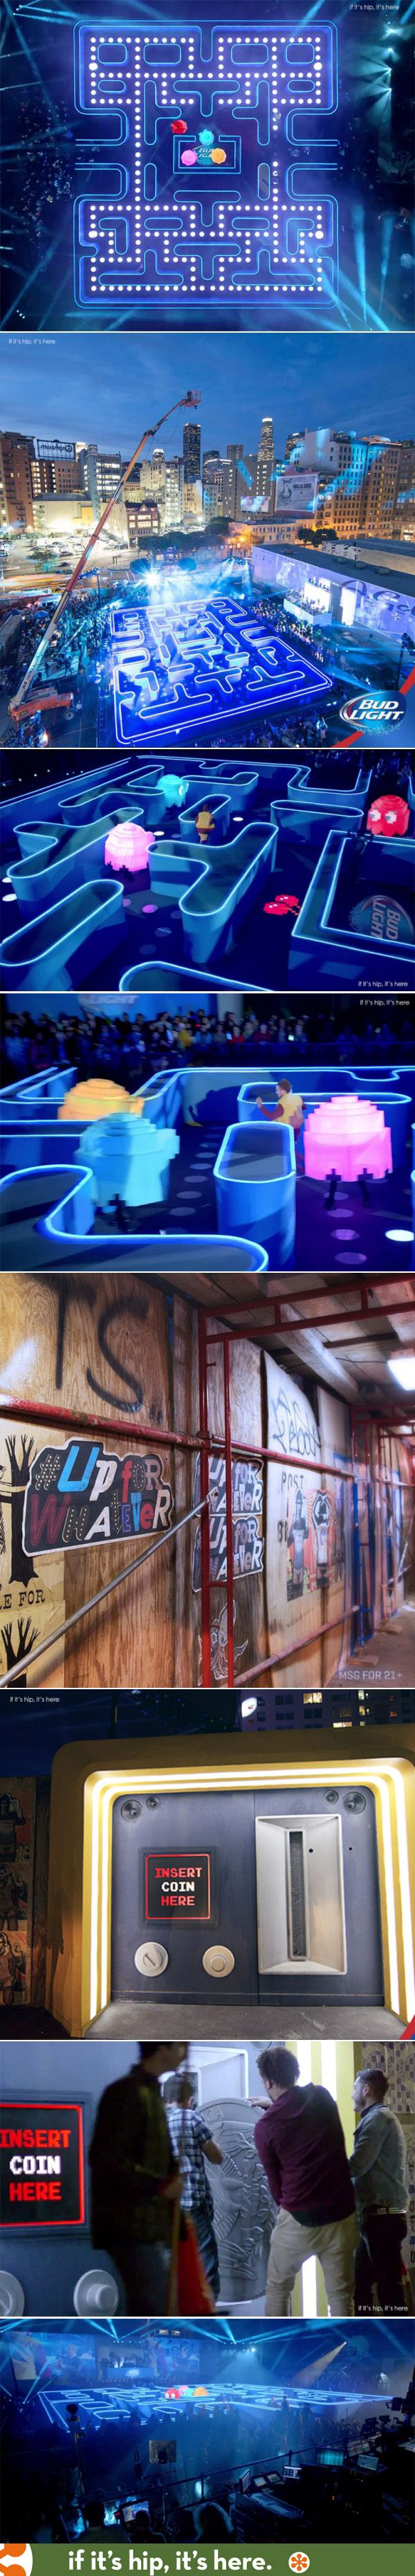 So cool! A real life sized Pac Man Game created for the Bud Light Superbowl spot Coin. #experiential